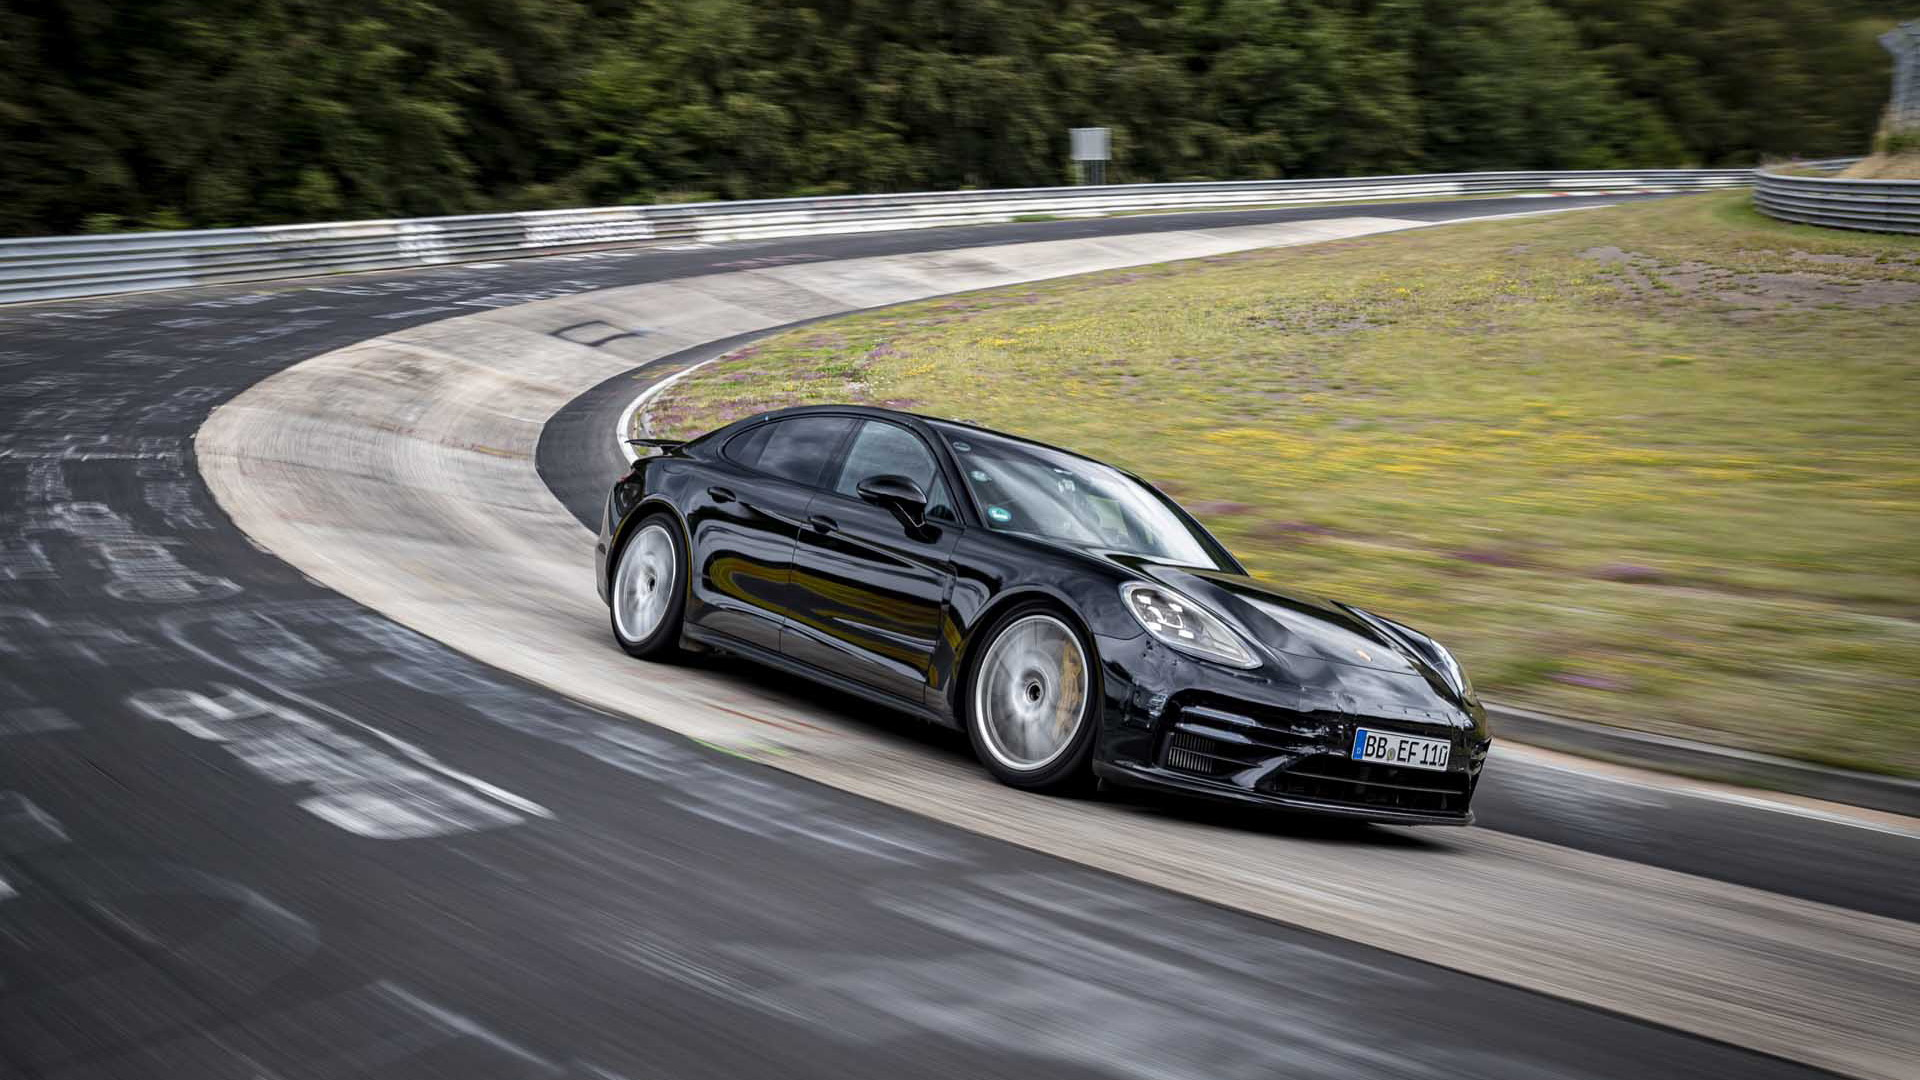 Porsche tester Lars Kern took the 2021 Panamera around the Nürburgring in 7:29.81 - August 2020